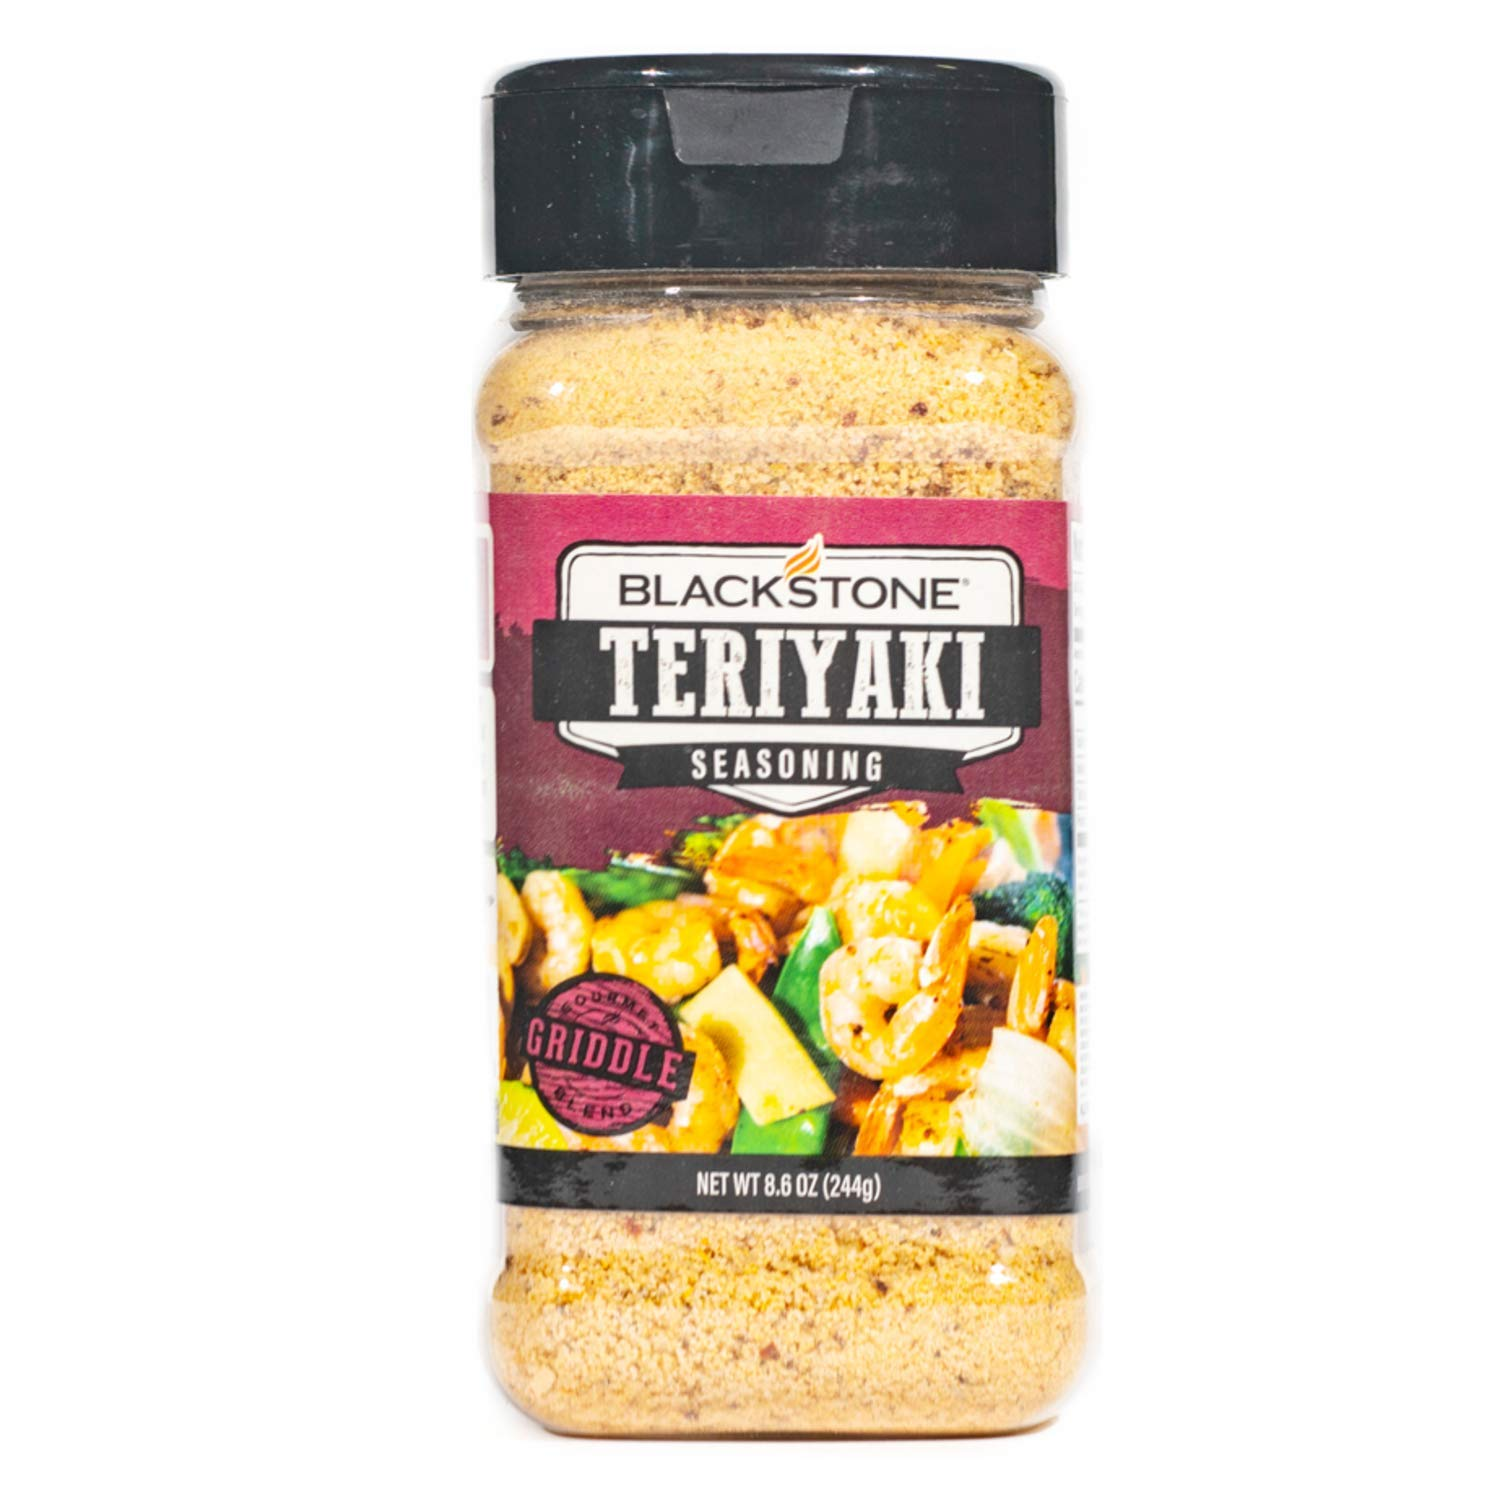 Blackstone Teriyaki Seasoning